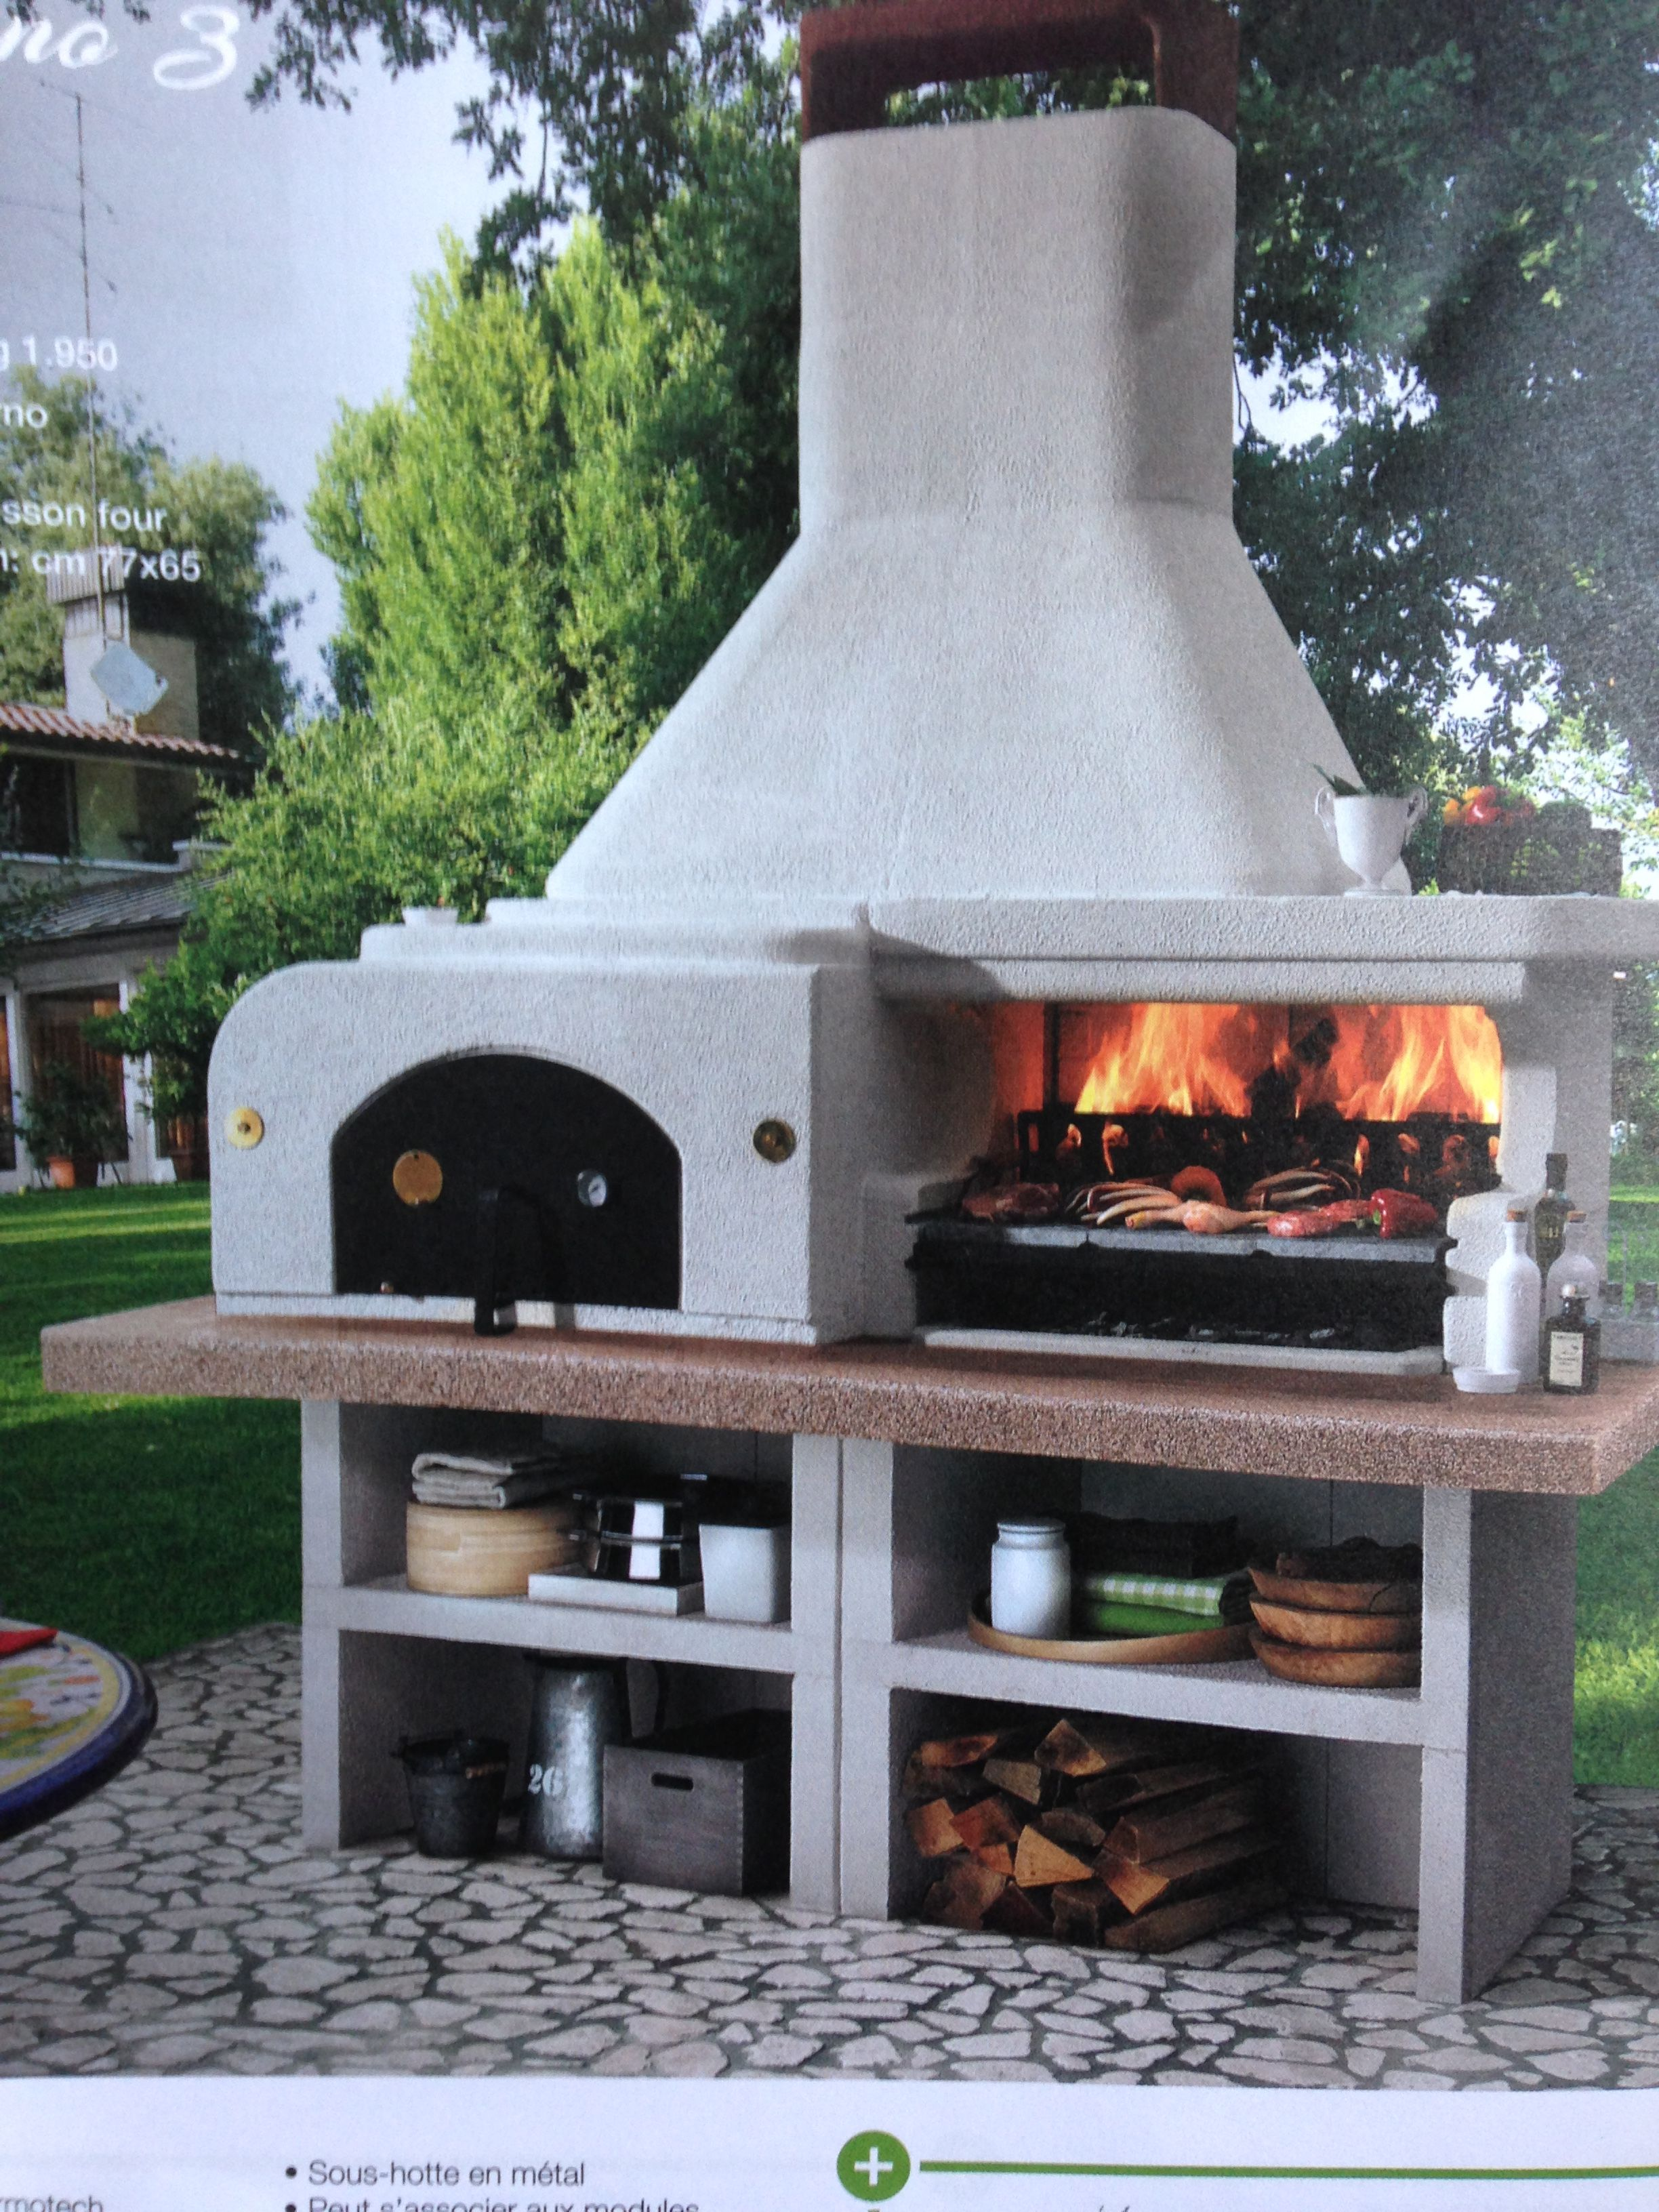 pin by rafael ant on hornos pinterest barbecues pergolas and